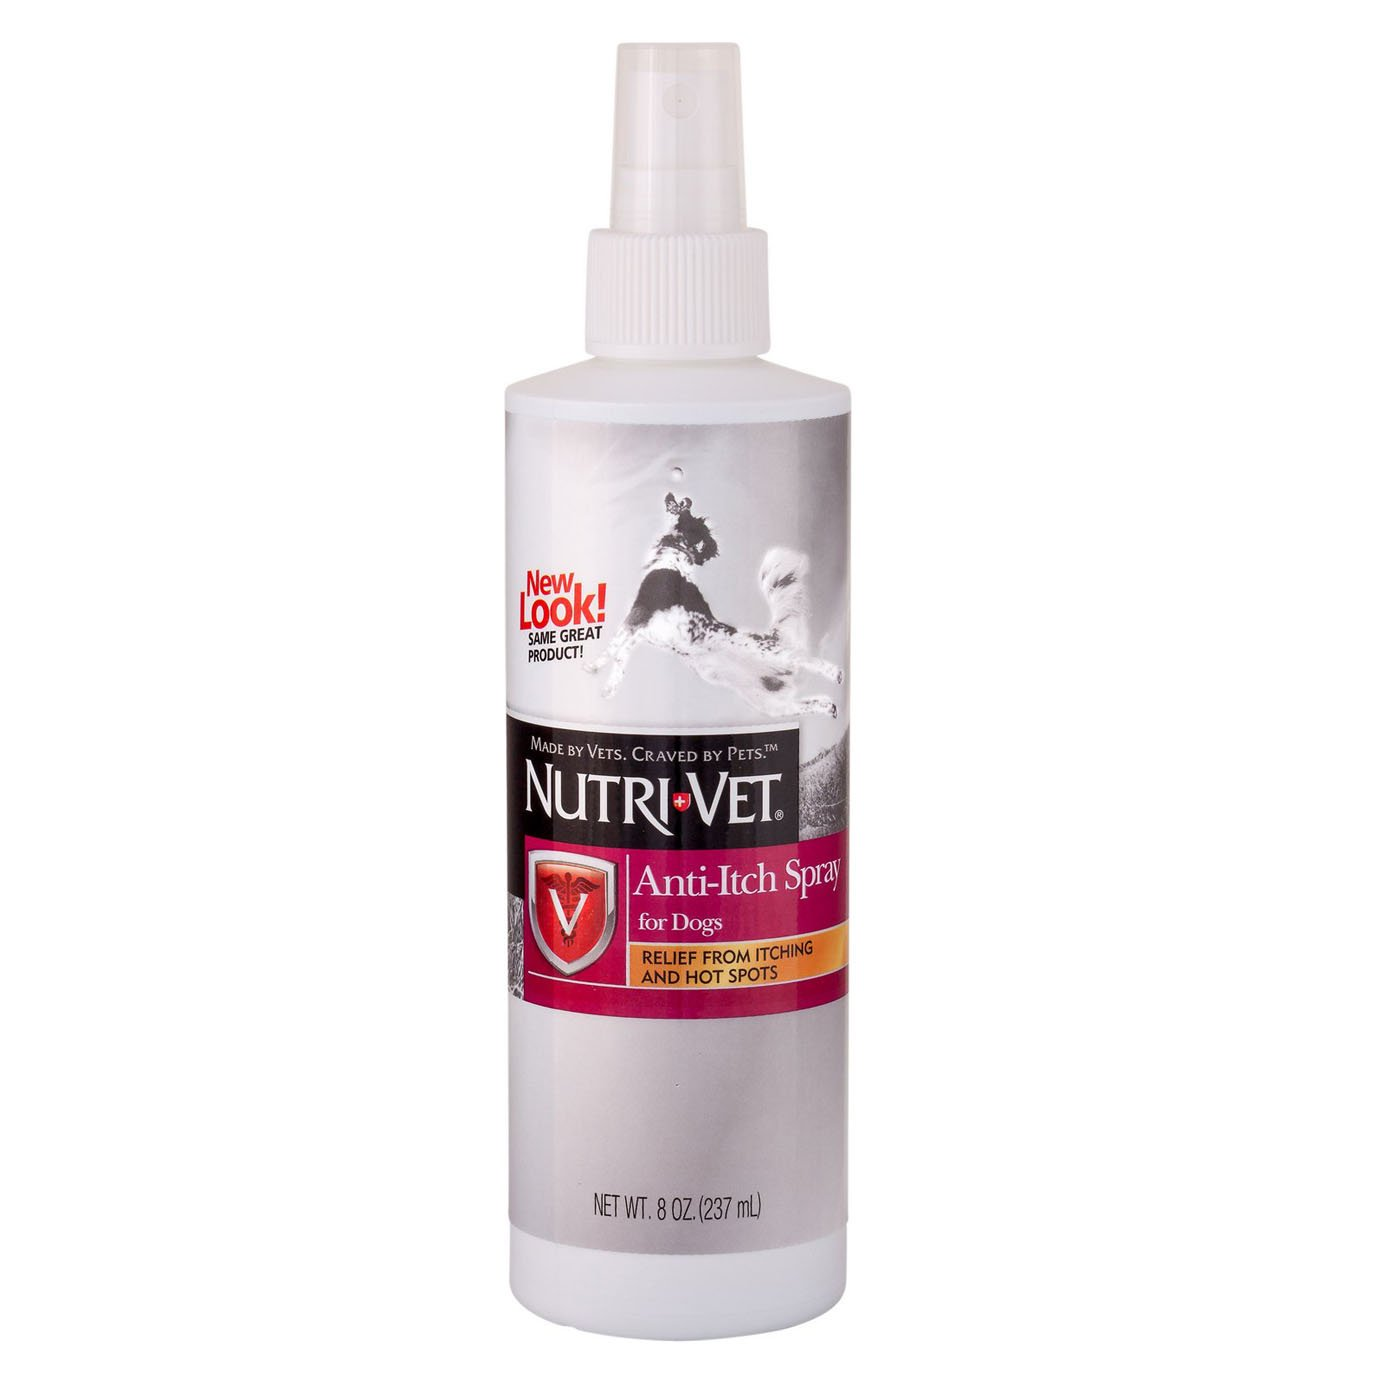 Dog Anti Itch Spray Made in USA Relief from Itching and Hot Spots 8 Oz Nutri Vet